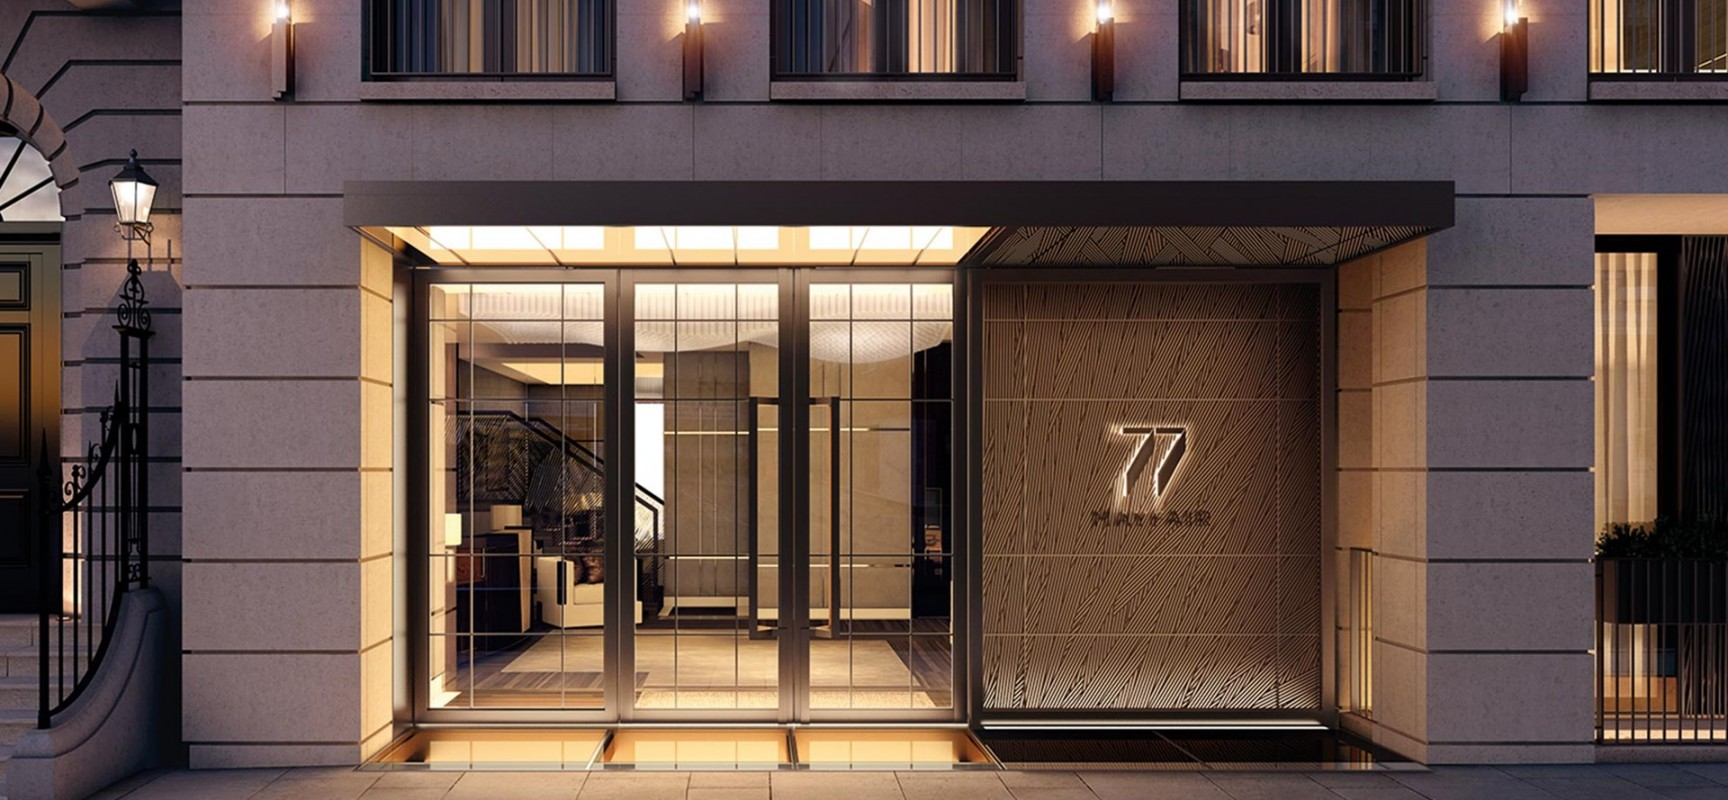 77 Mayfair: latest property development sold out before completion